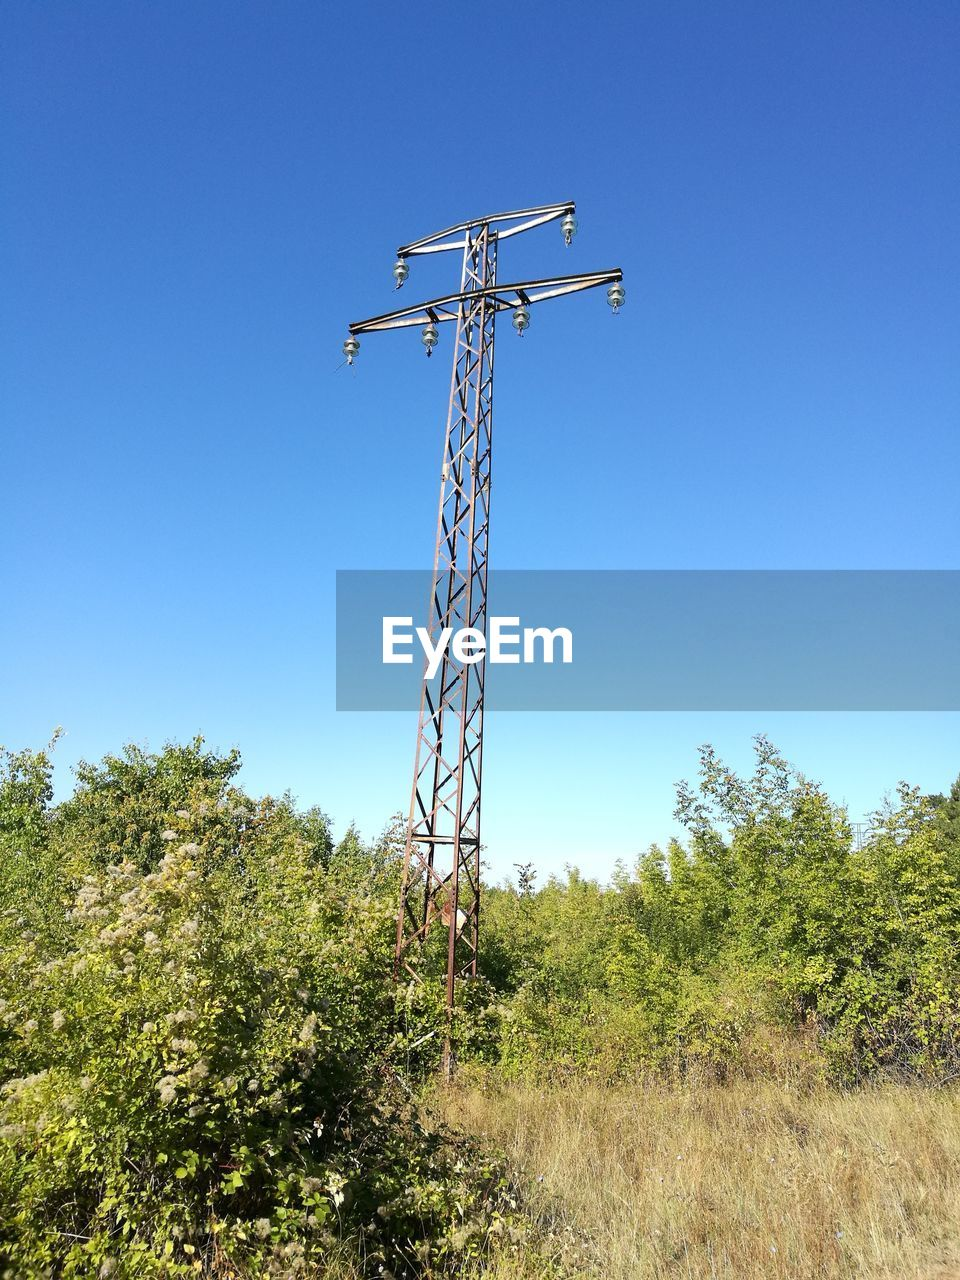 sky, plant, clear sky, low angle view, nature, blue, tree, day, no people, sunlight, land, growth, outdoors, field, green color, technology, copy space, tall - high, metal, connection